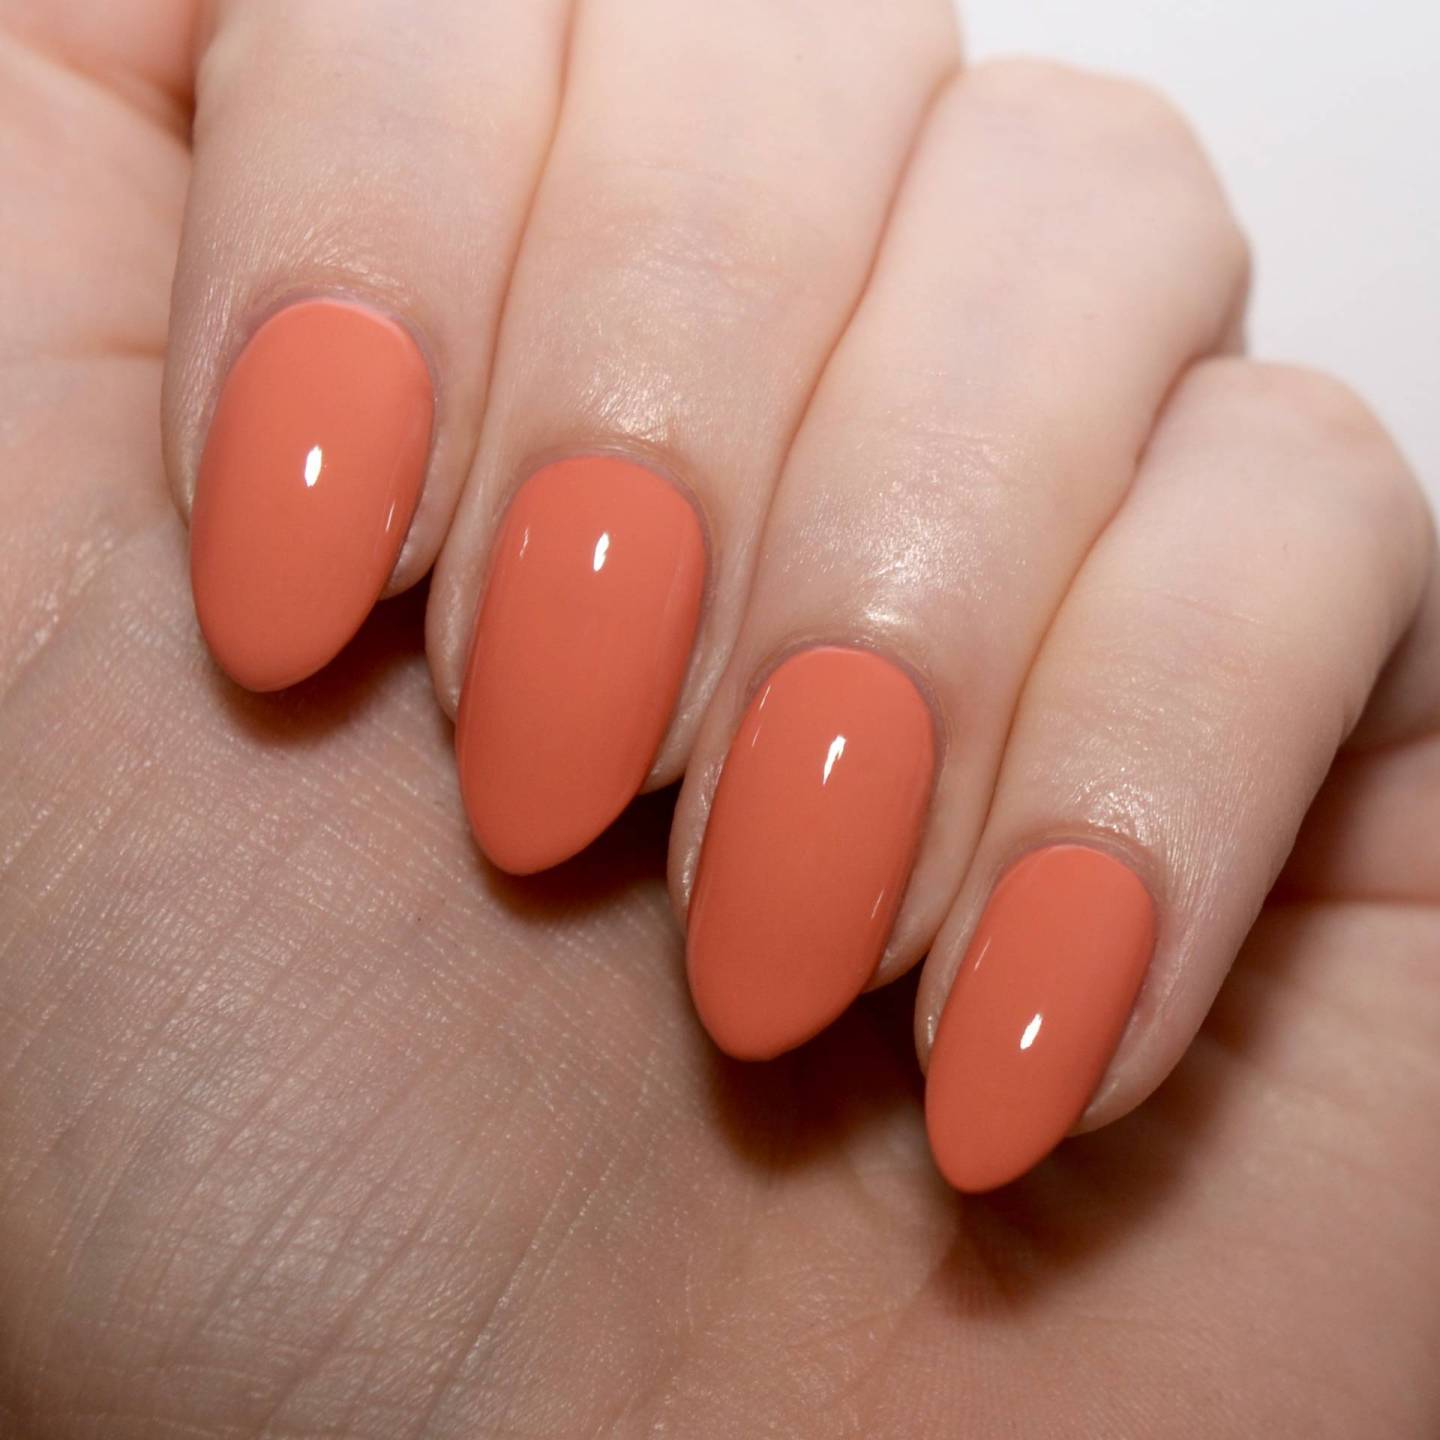 Pastel Orange Nail Polish Essie: Muted Nail Trend With Morgan Taylor Polishes // Talonted Lex